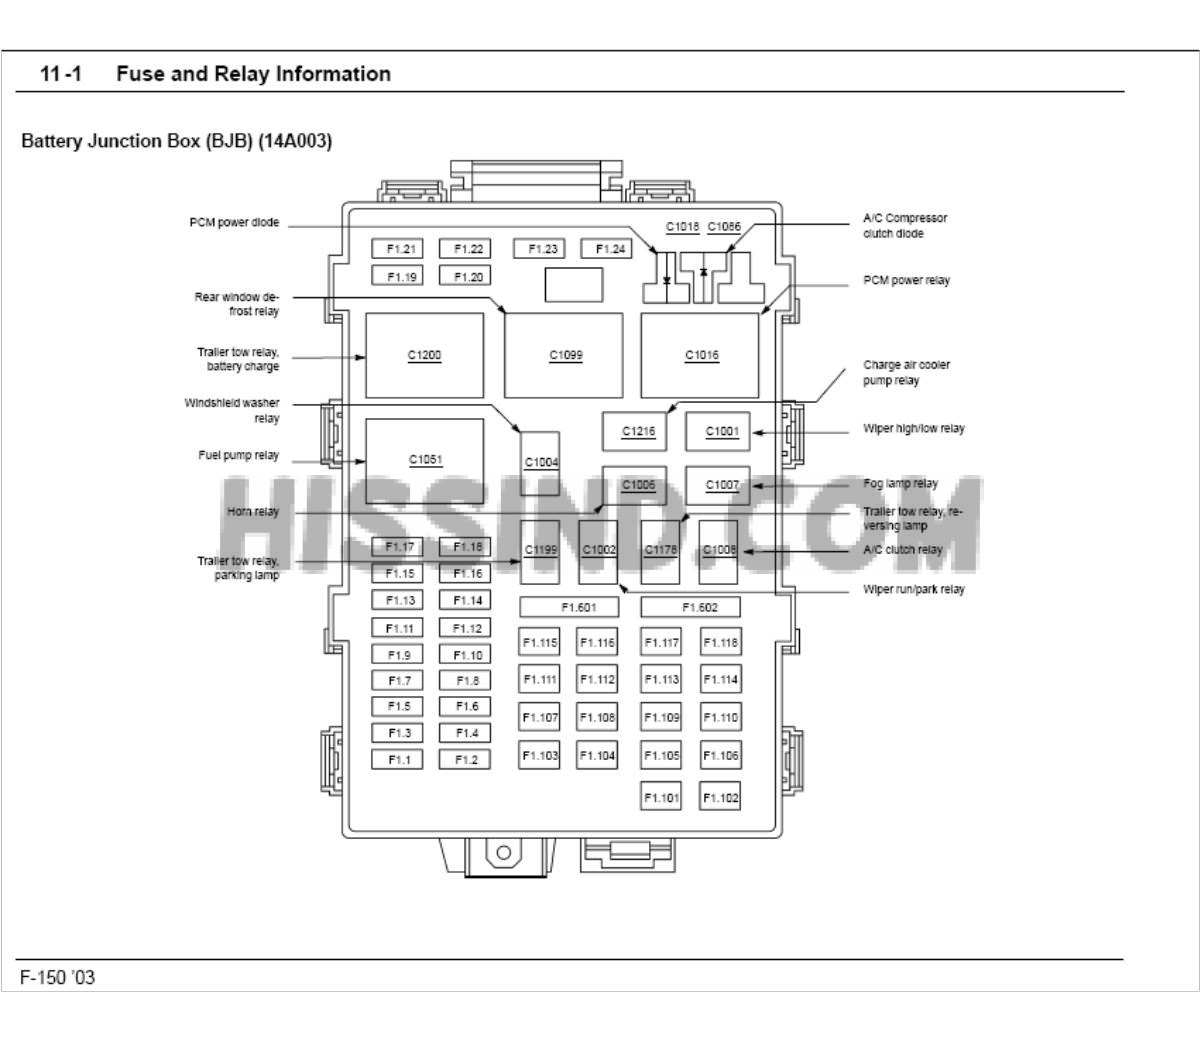 [WRG-1056] 2014 F 150 Fuse Box Location